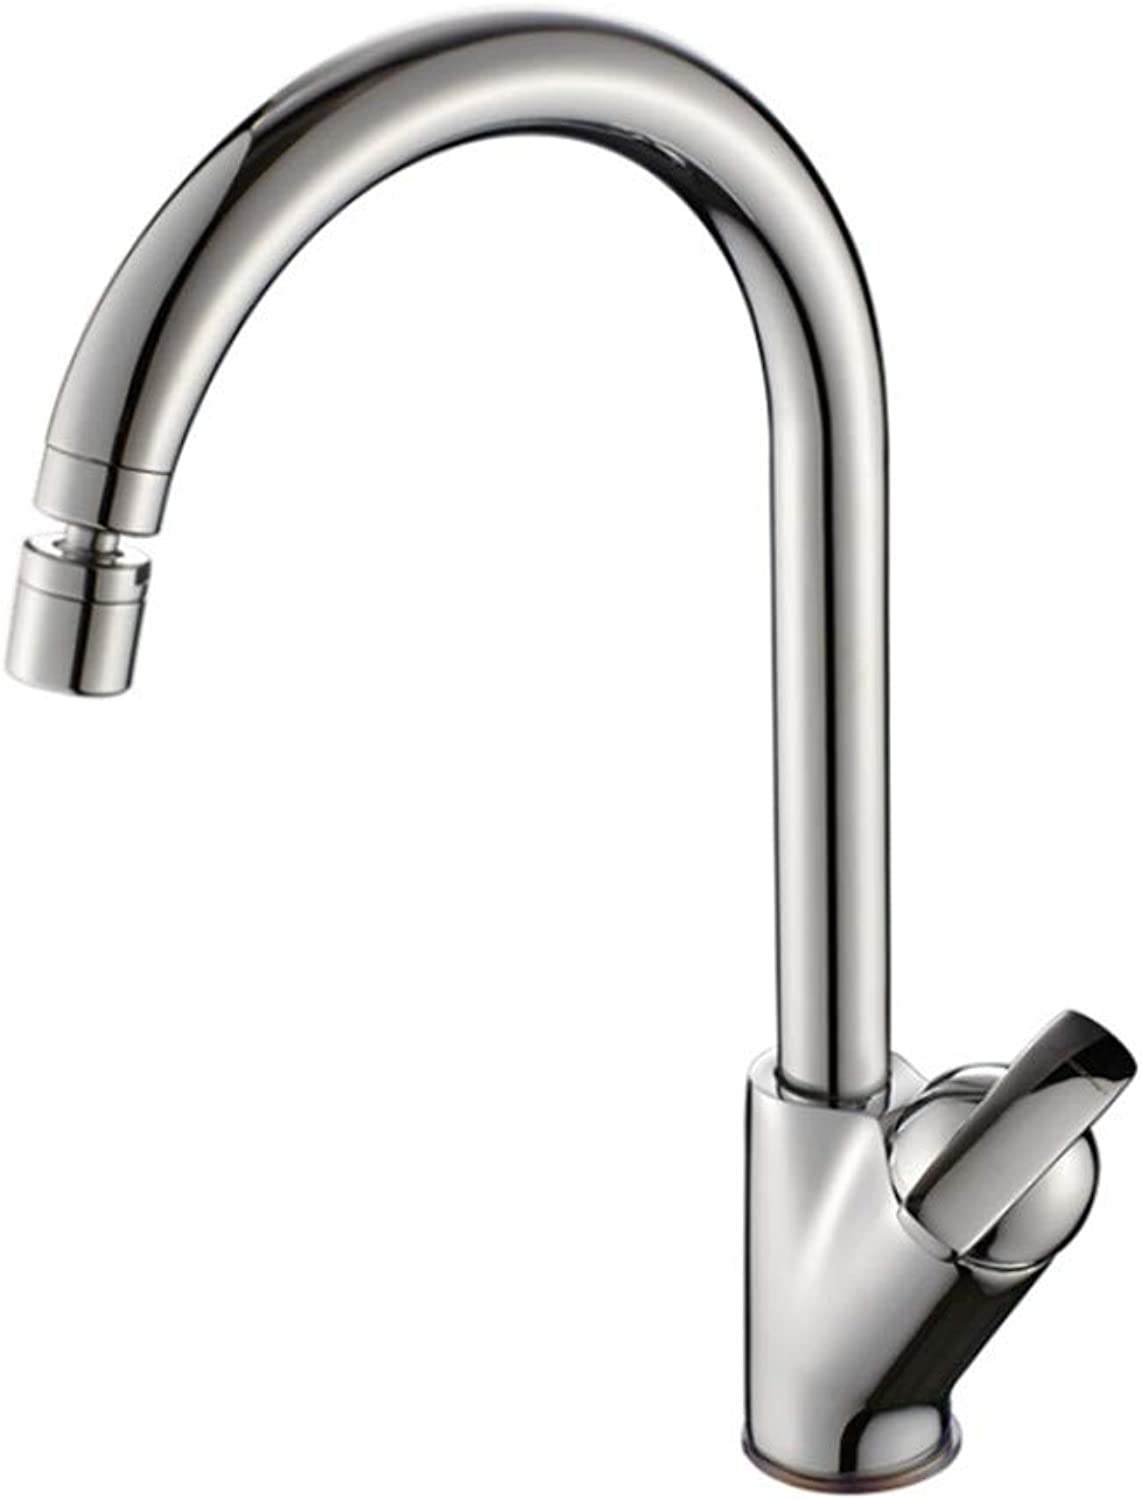 Ss Copper Kitchen Faucet Sink Faucet Hot And Cold Sink 360 Degree redatable Faucet